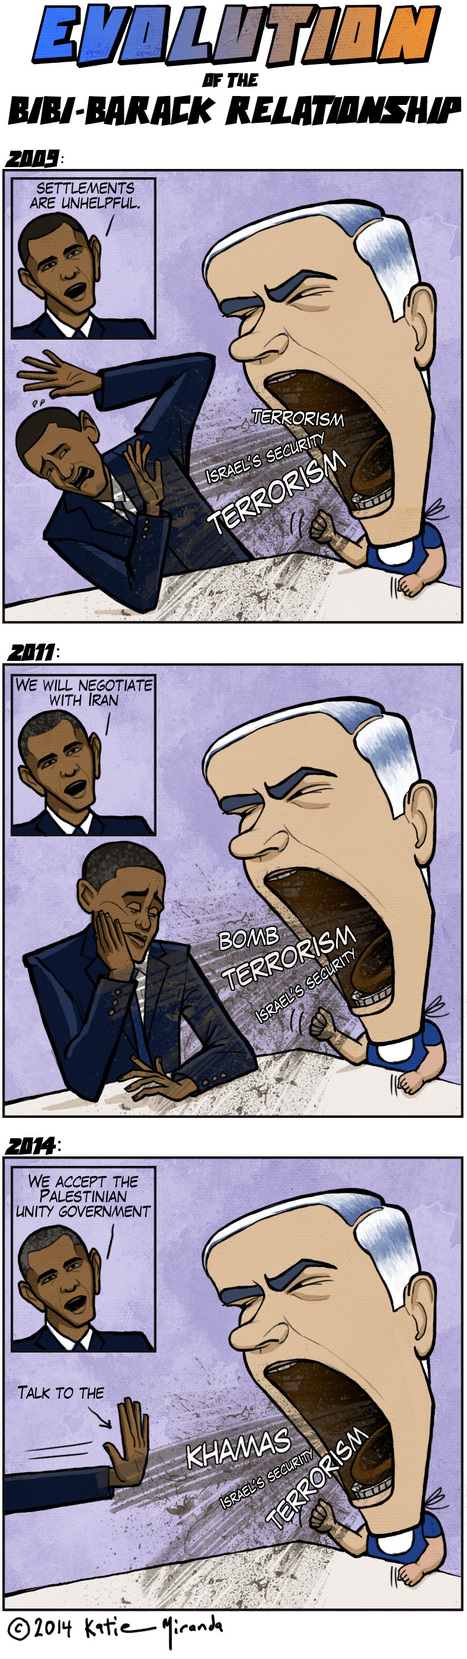 #cartoon Evolution of the relation between #Obama & #Netanyahu #Israel #Palestine #US | News in english | Scoop.it